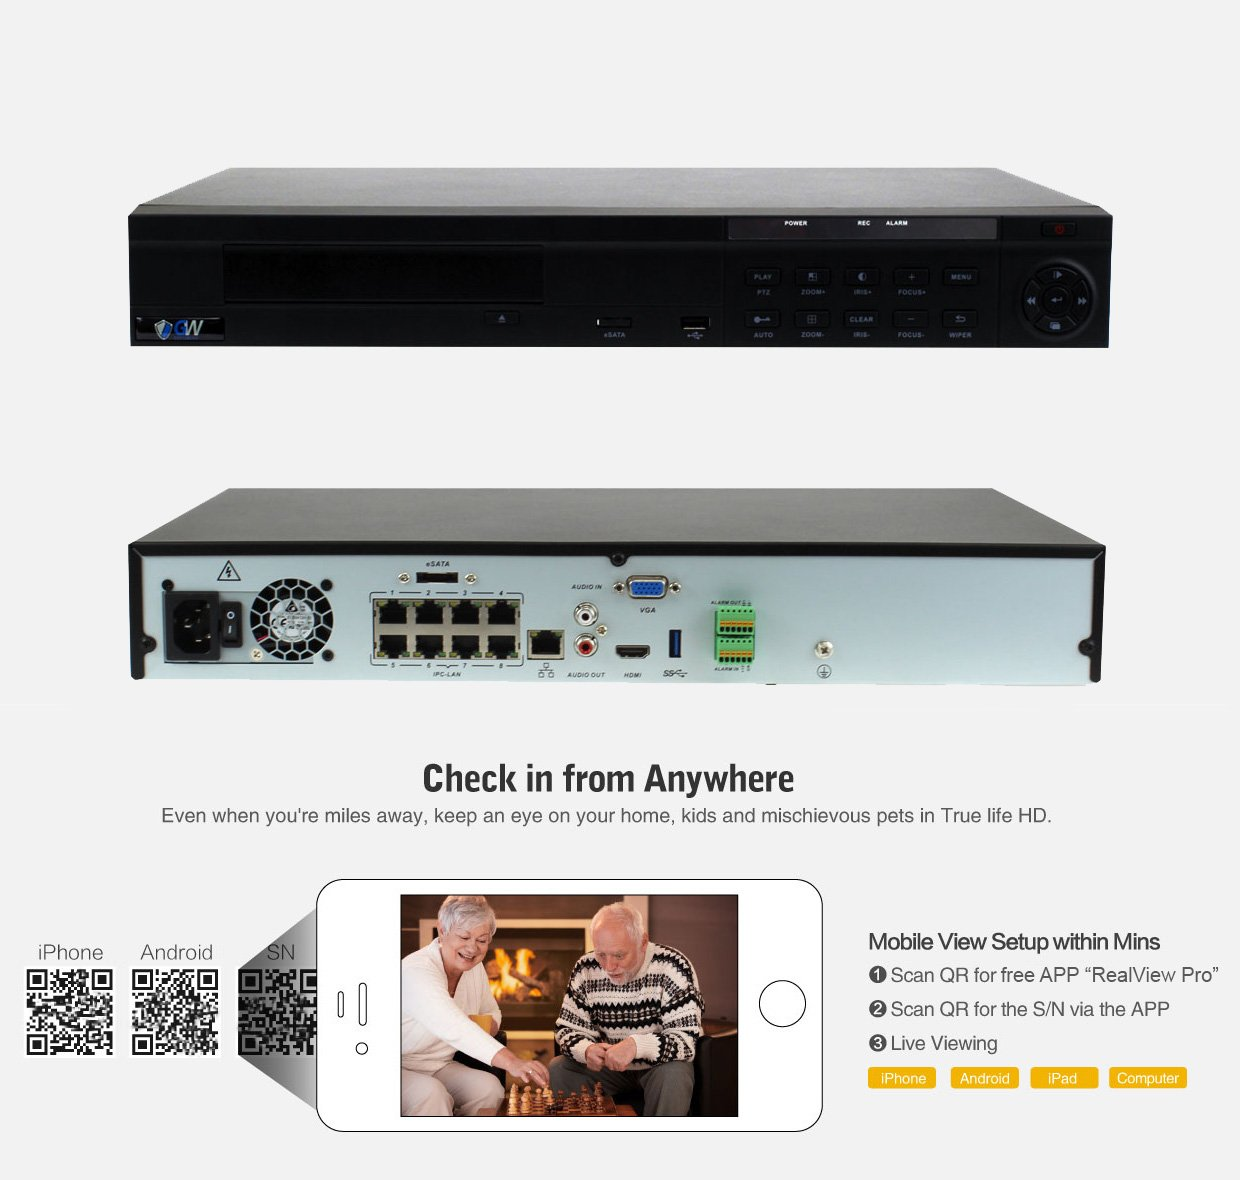 GW Security 8 Channel NVR / Network Video Recorder with 8 ports PoE Switch Built in - Supports Up 8 X 5MP /3MP /2MP 1080P ONVIF IP Cameras @ 30fps Realtime, Quick QR Code Smartphone Access, 2TB HDD by GW Security Inc (Image #2)